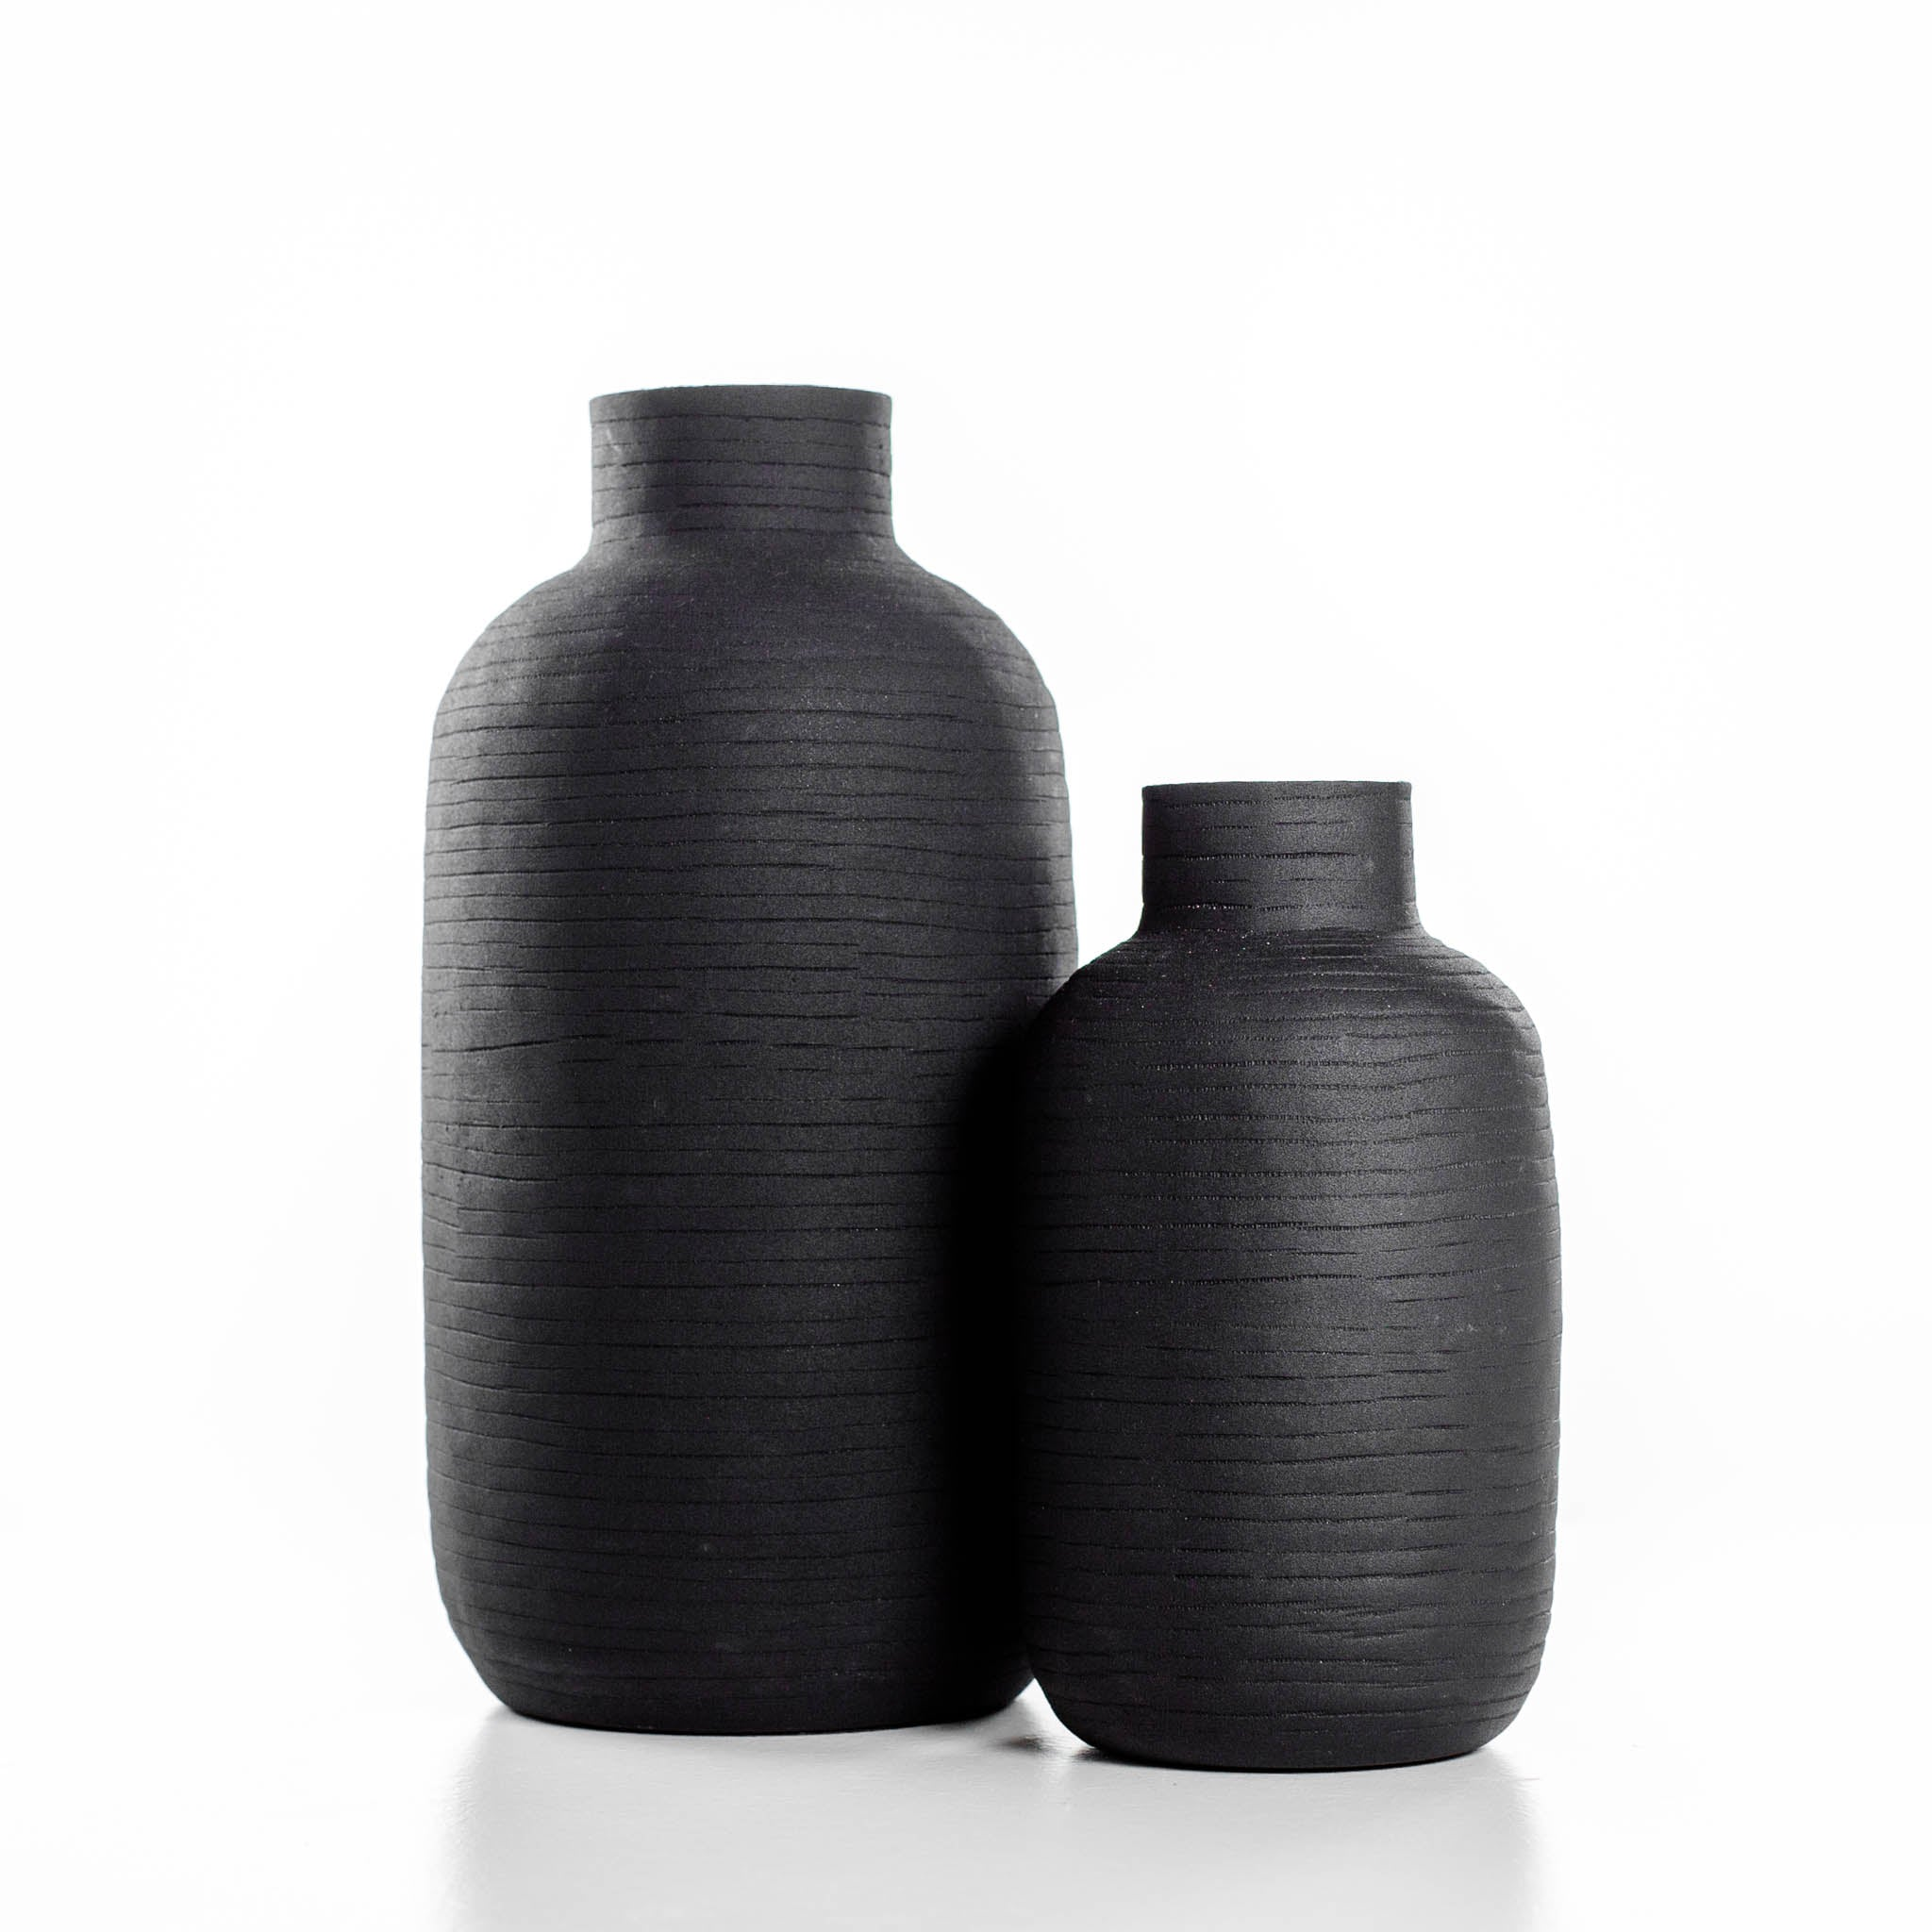 Oblong Black Ceramic Vase